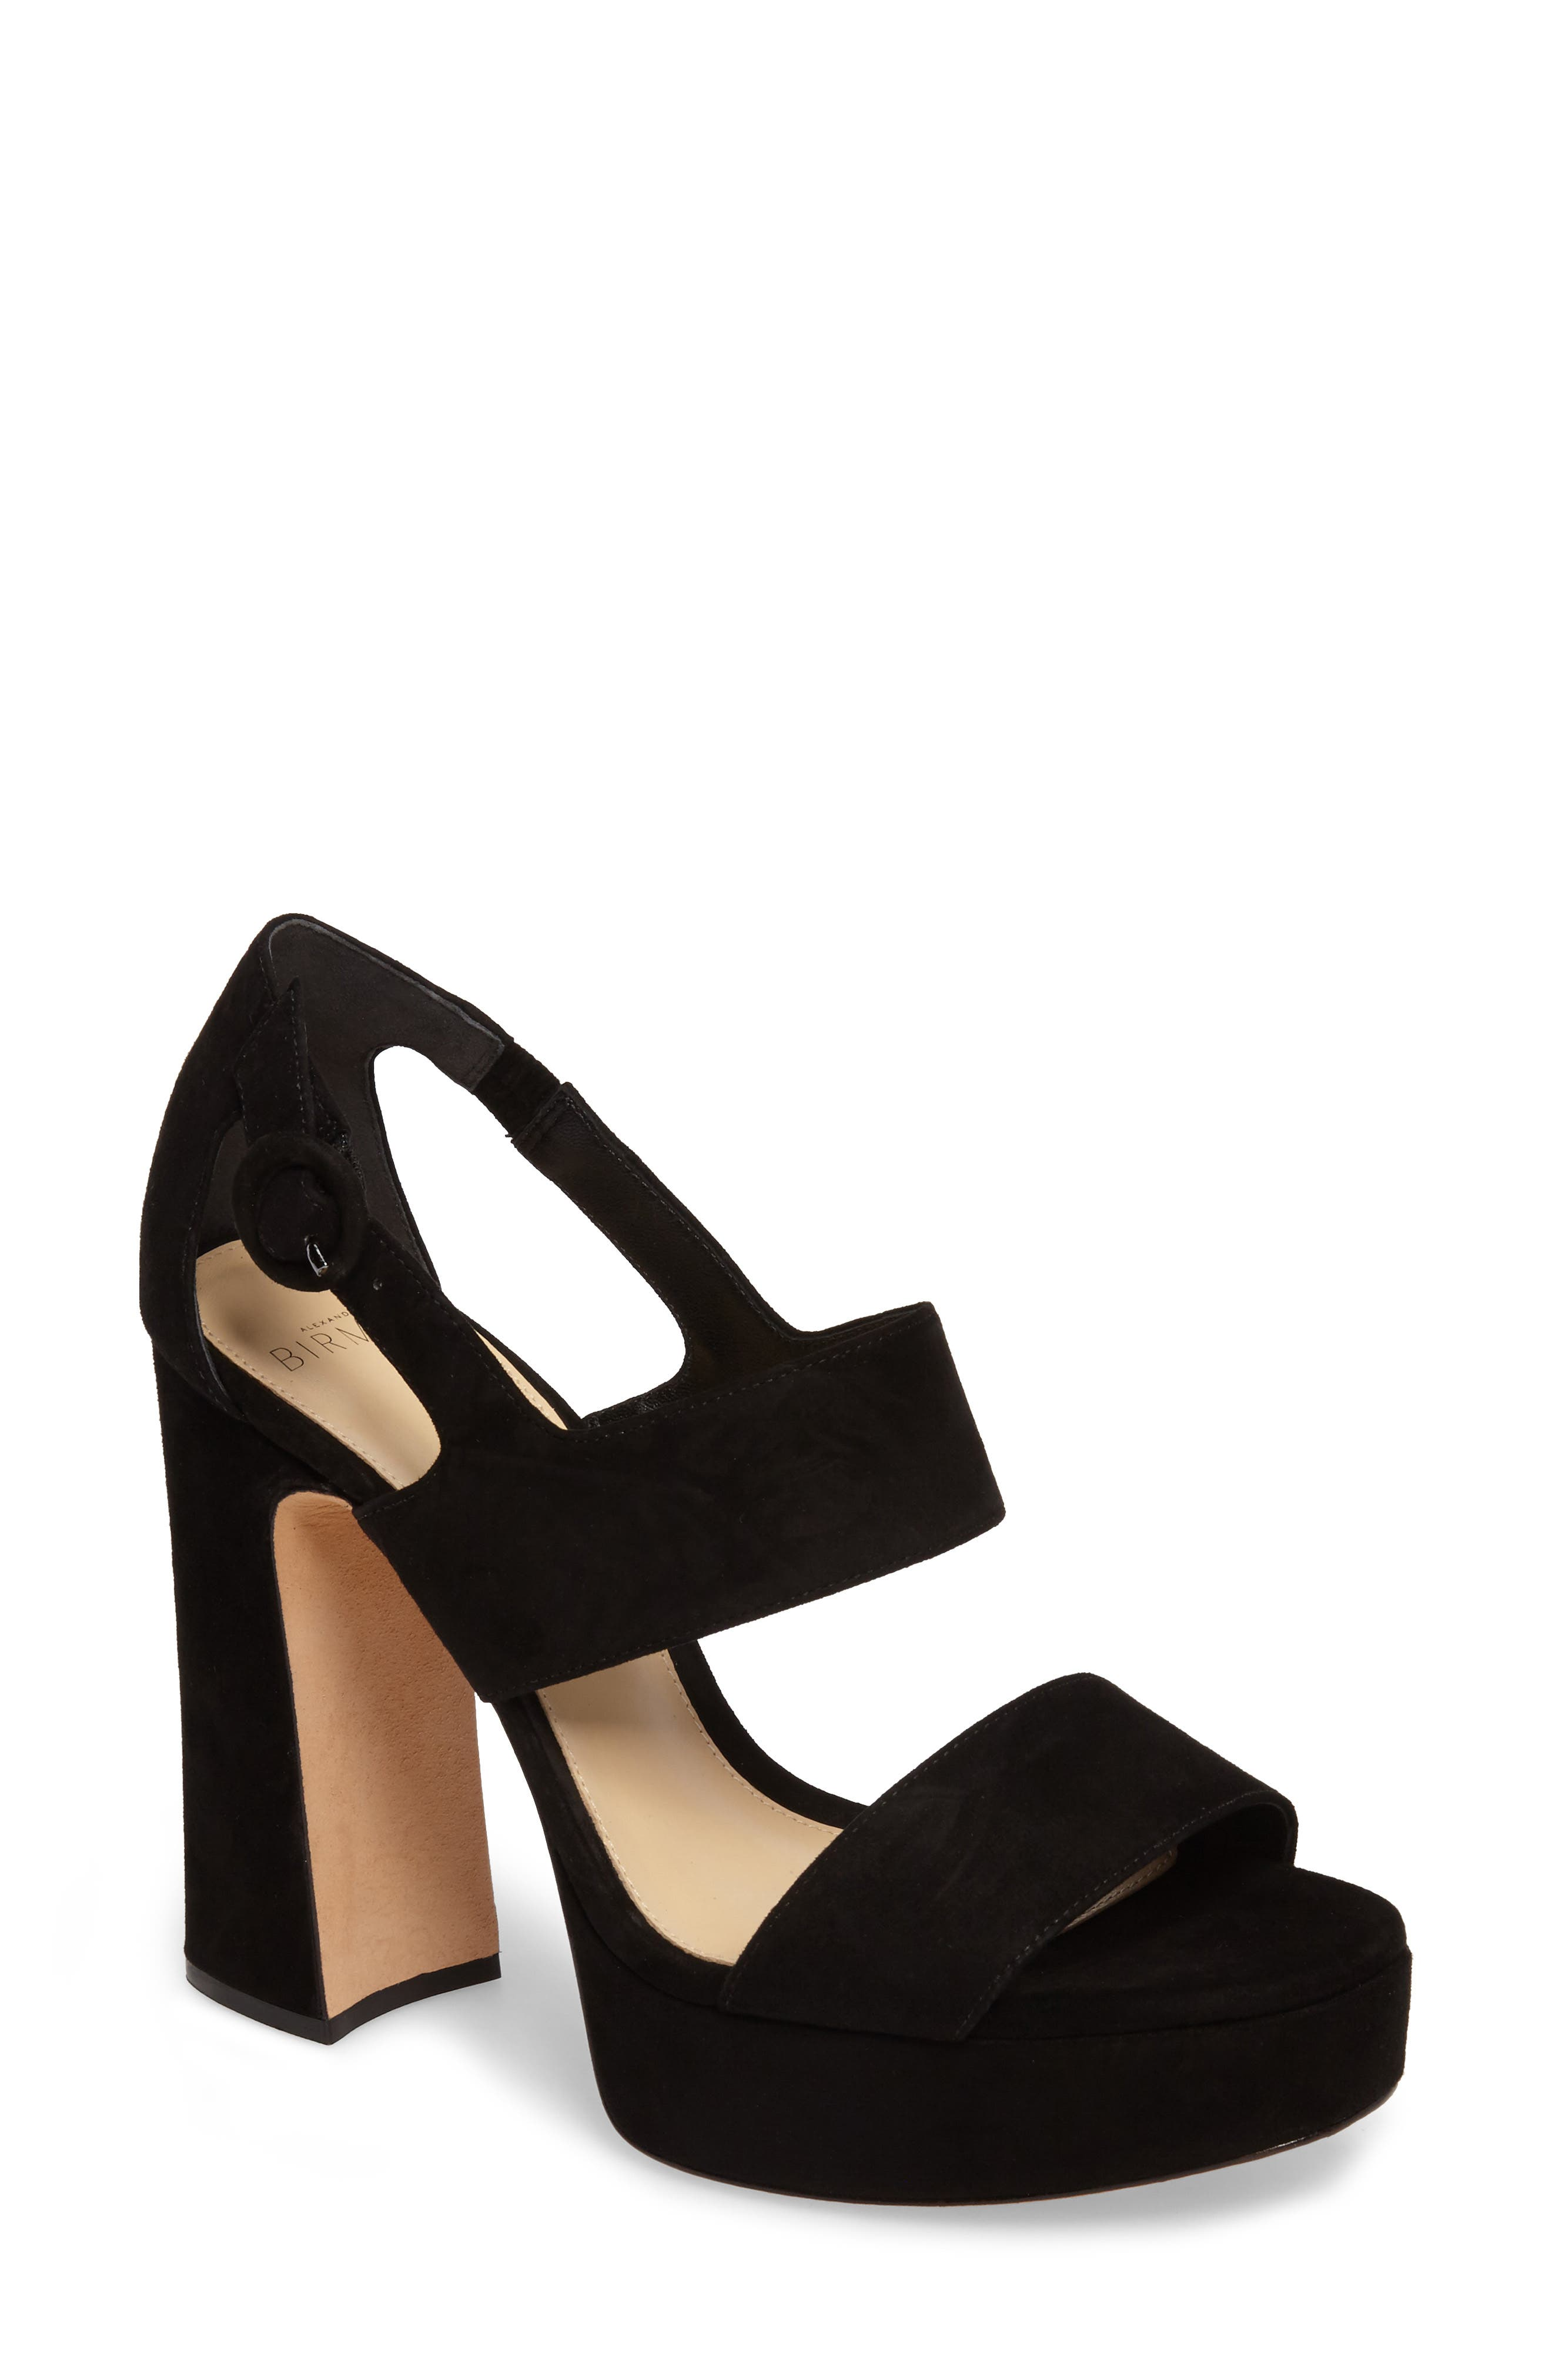 Elouise Platform Sandal,                         Main,                         color, 001